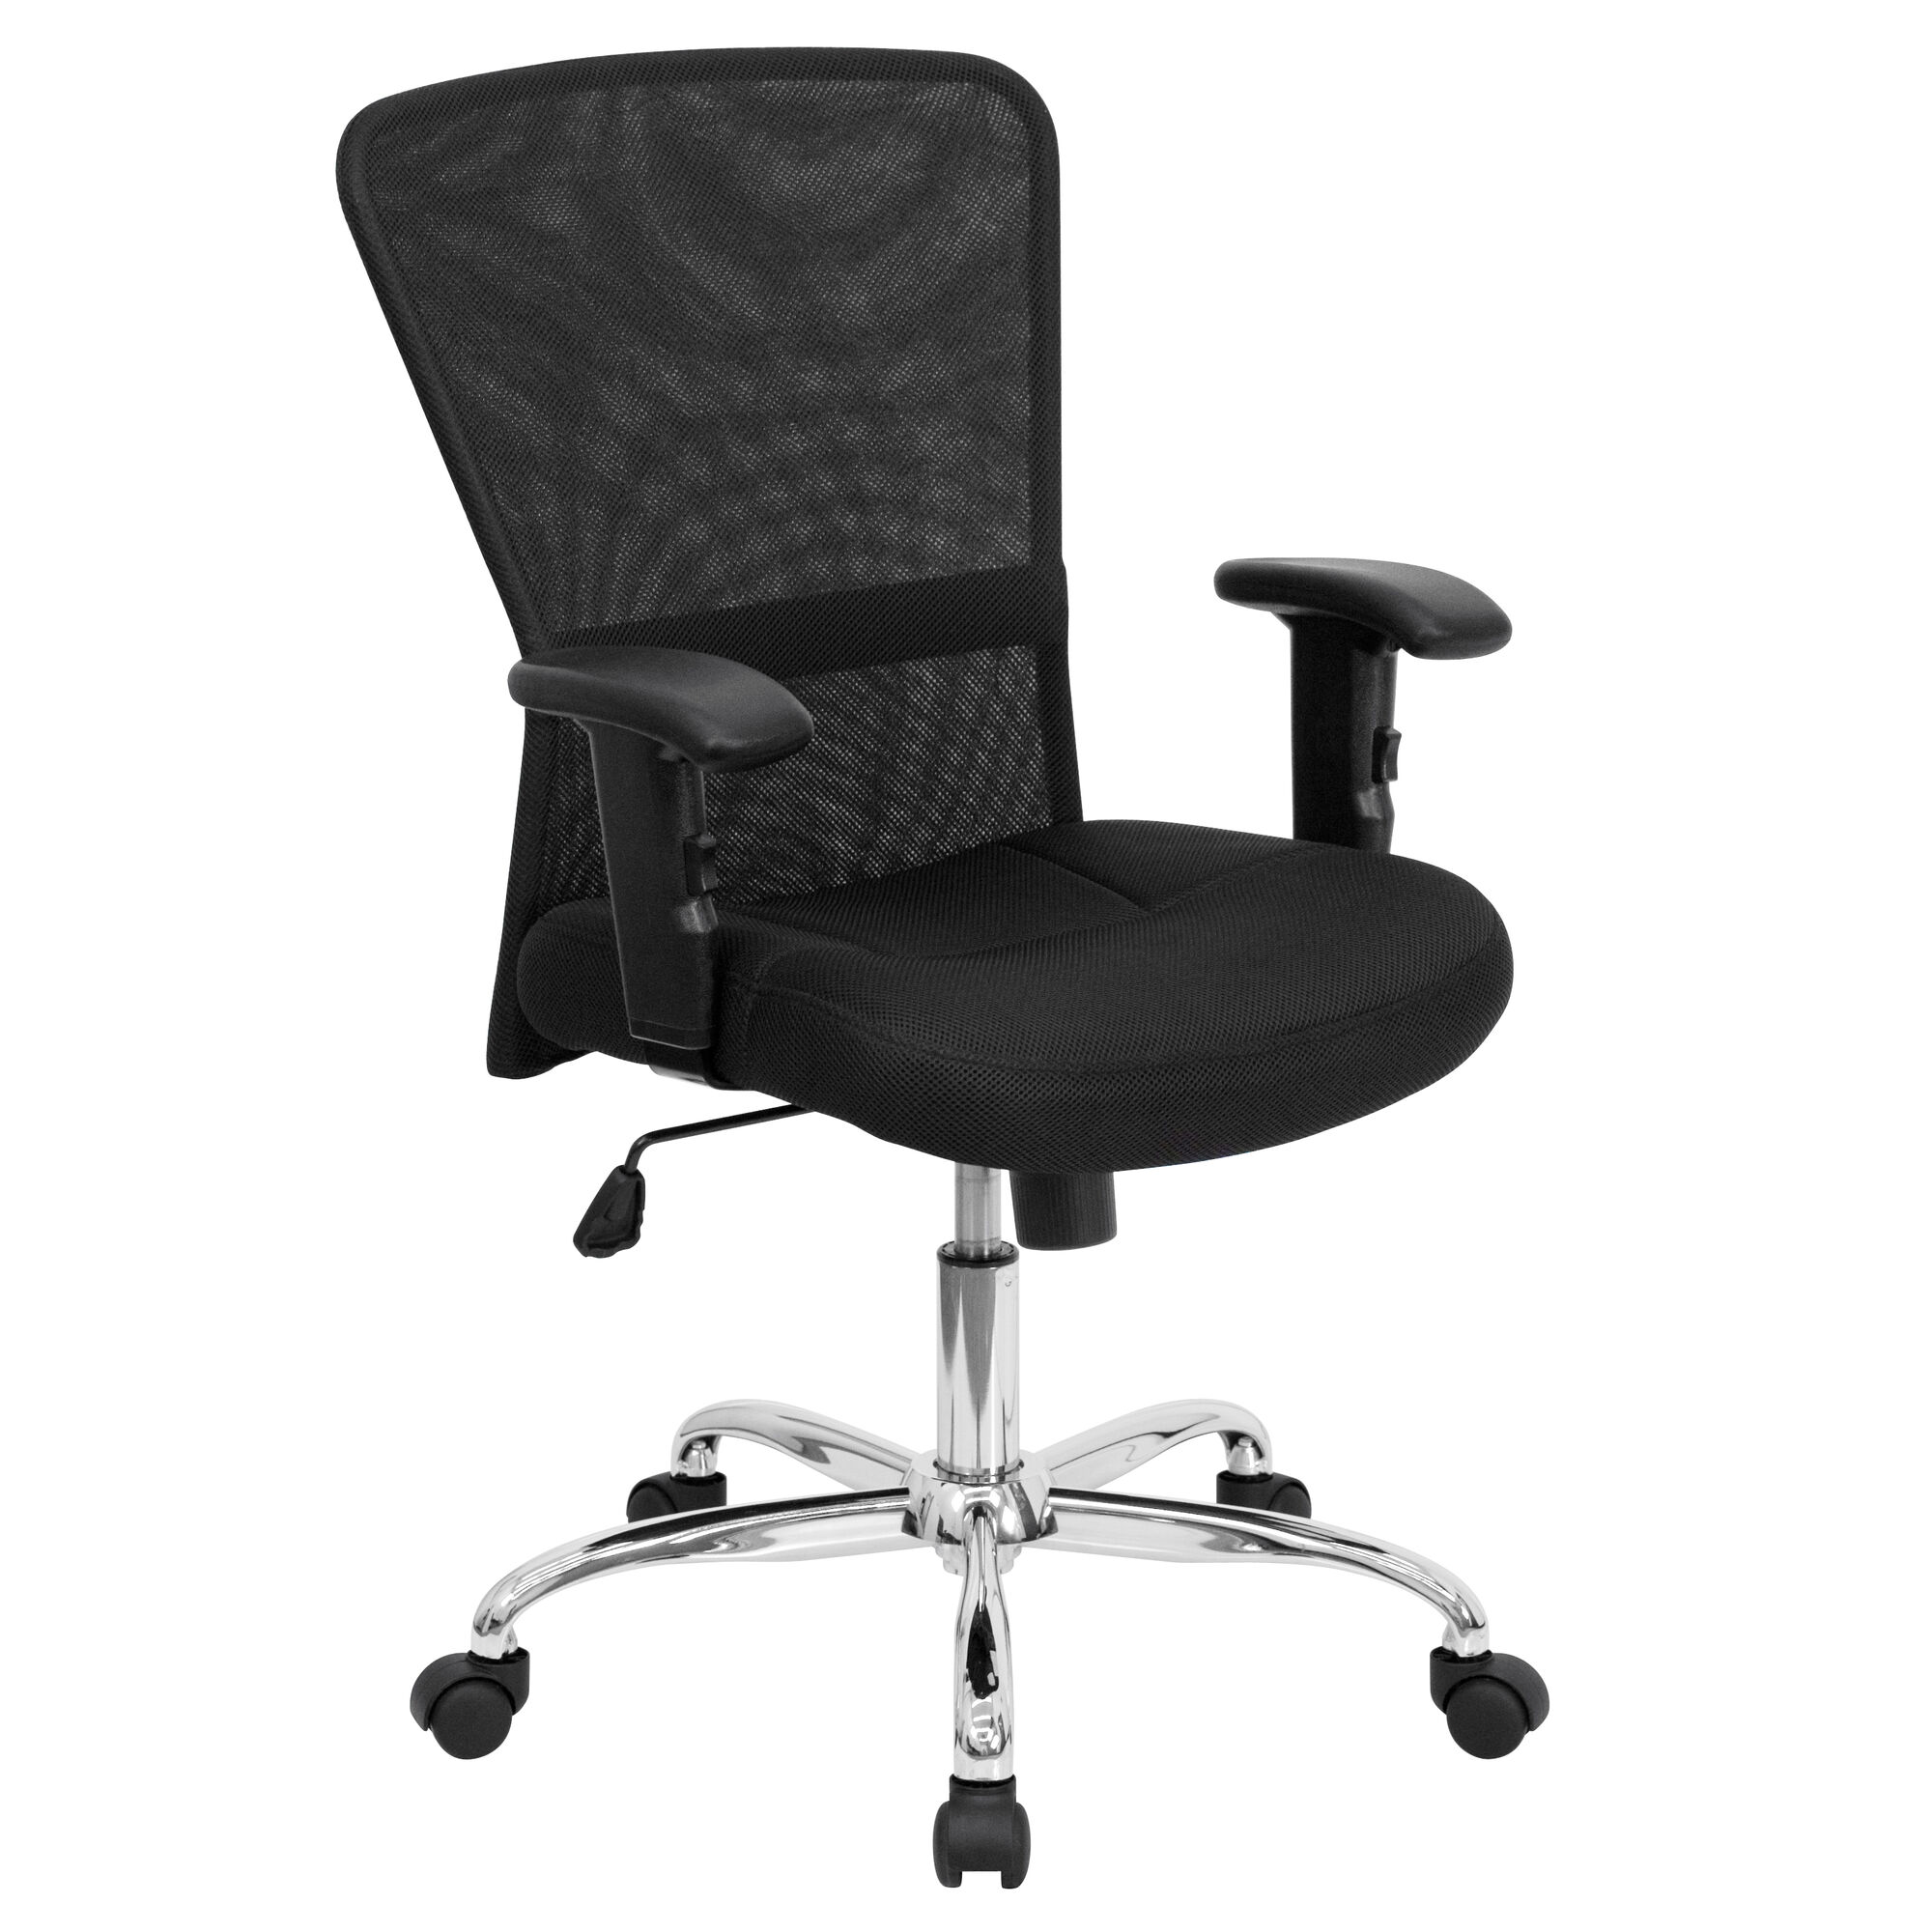 Fabulous Mid Back Black Mesh Contemporary Swivel Task Office Chair With Chrome Base And Adjustable Arms Home Interior And Landscaping Transignezvosmurscom